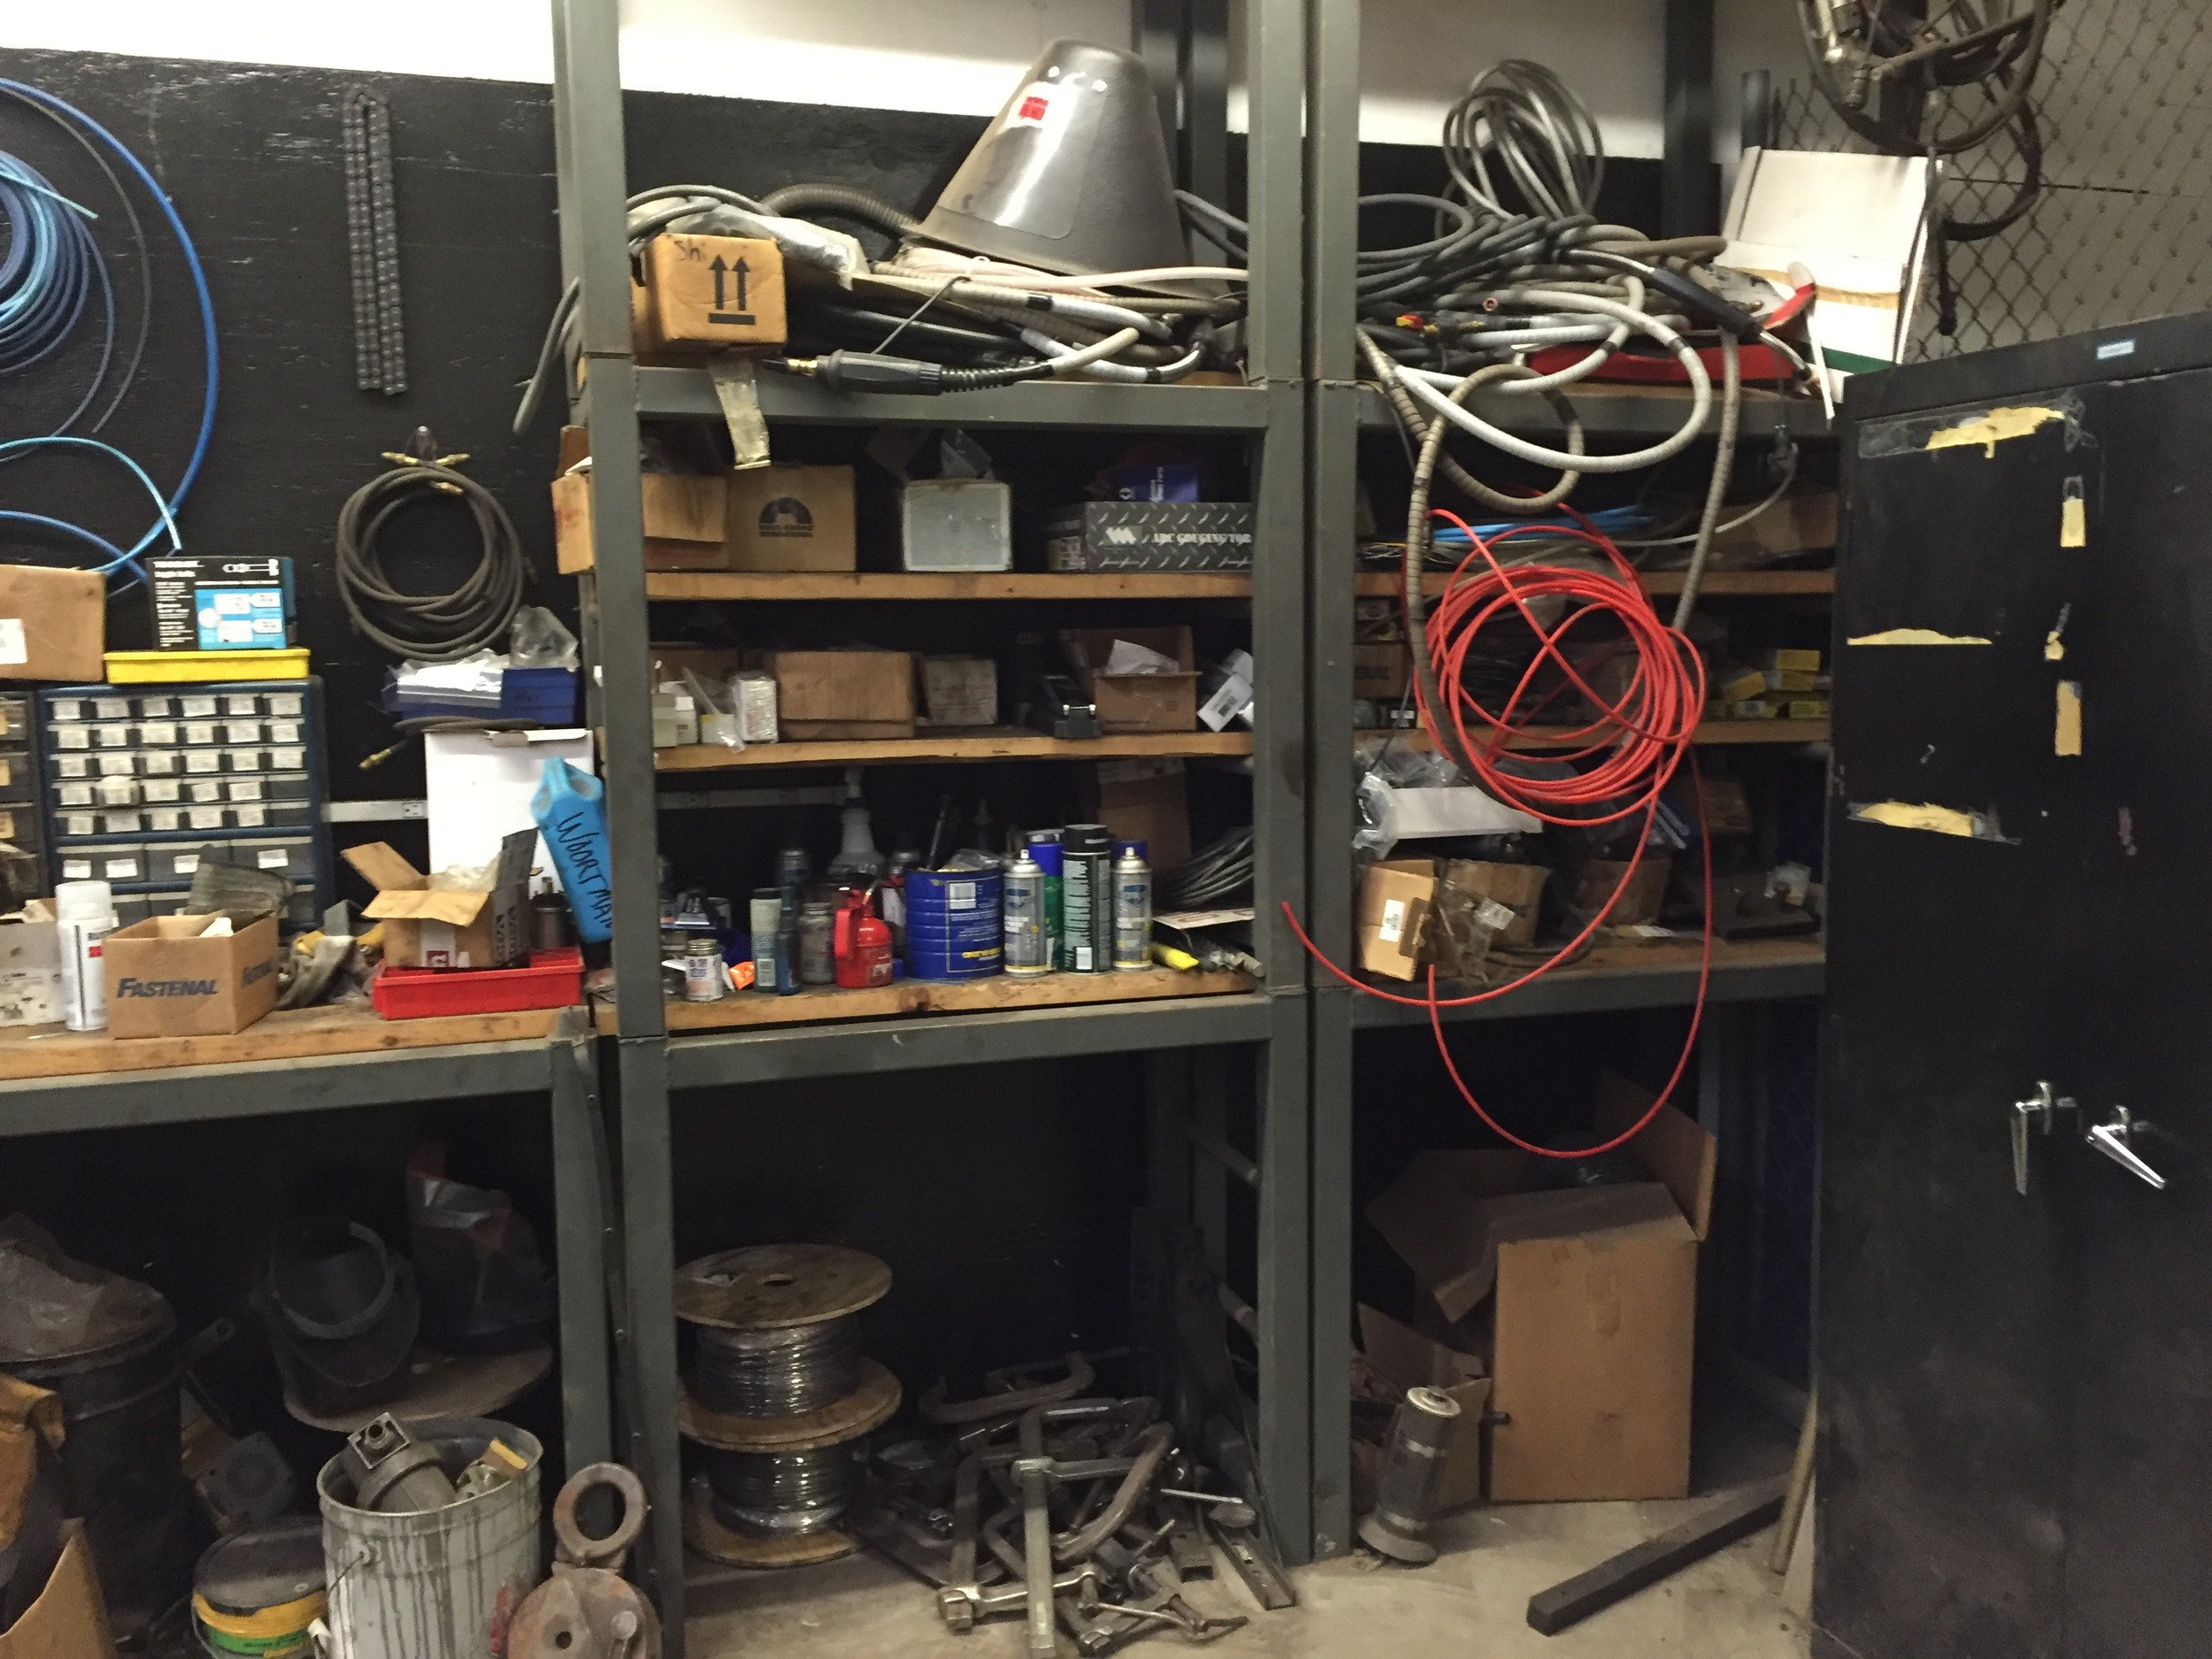 The goal was to have one continuous, cleared workbench.